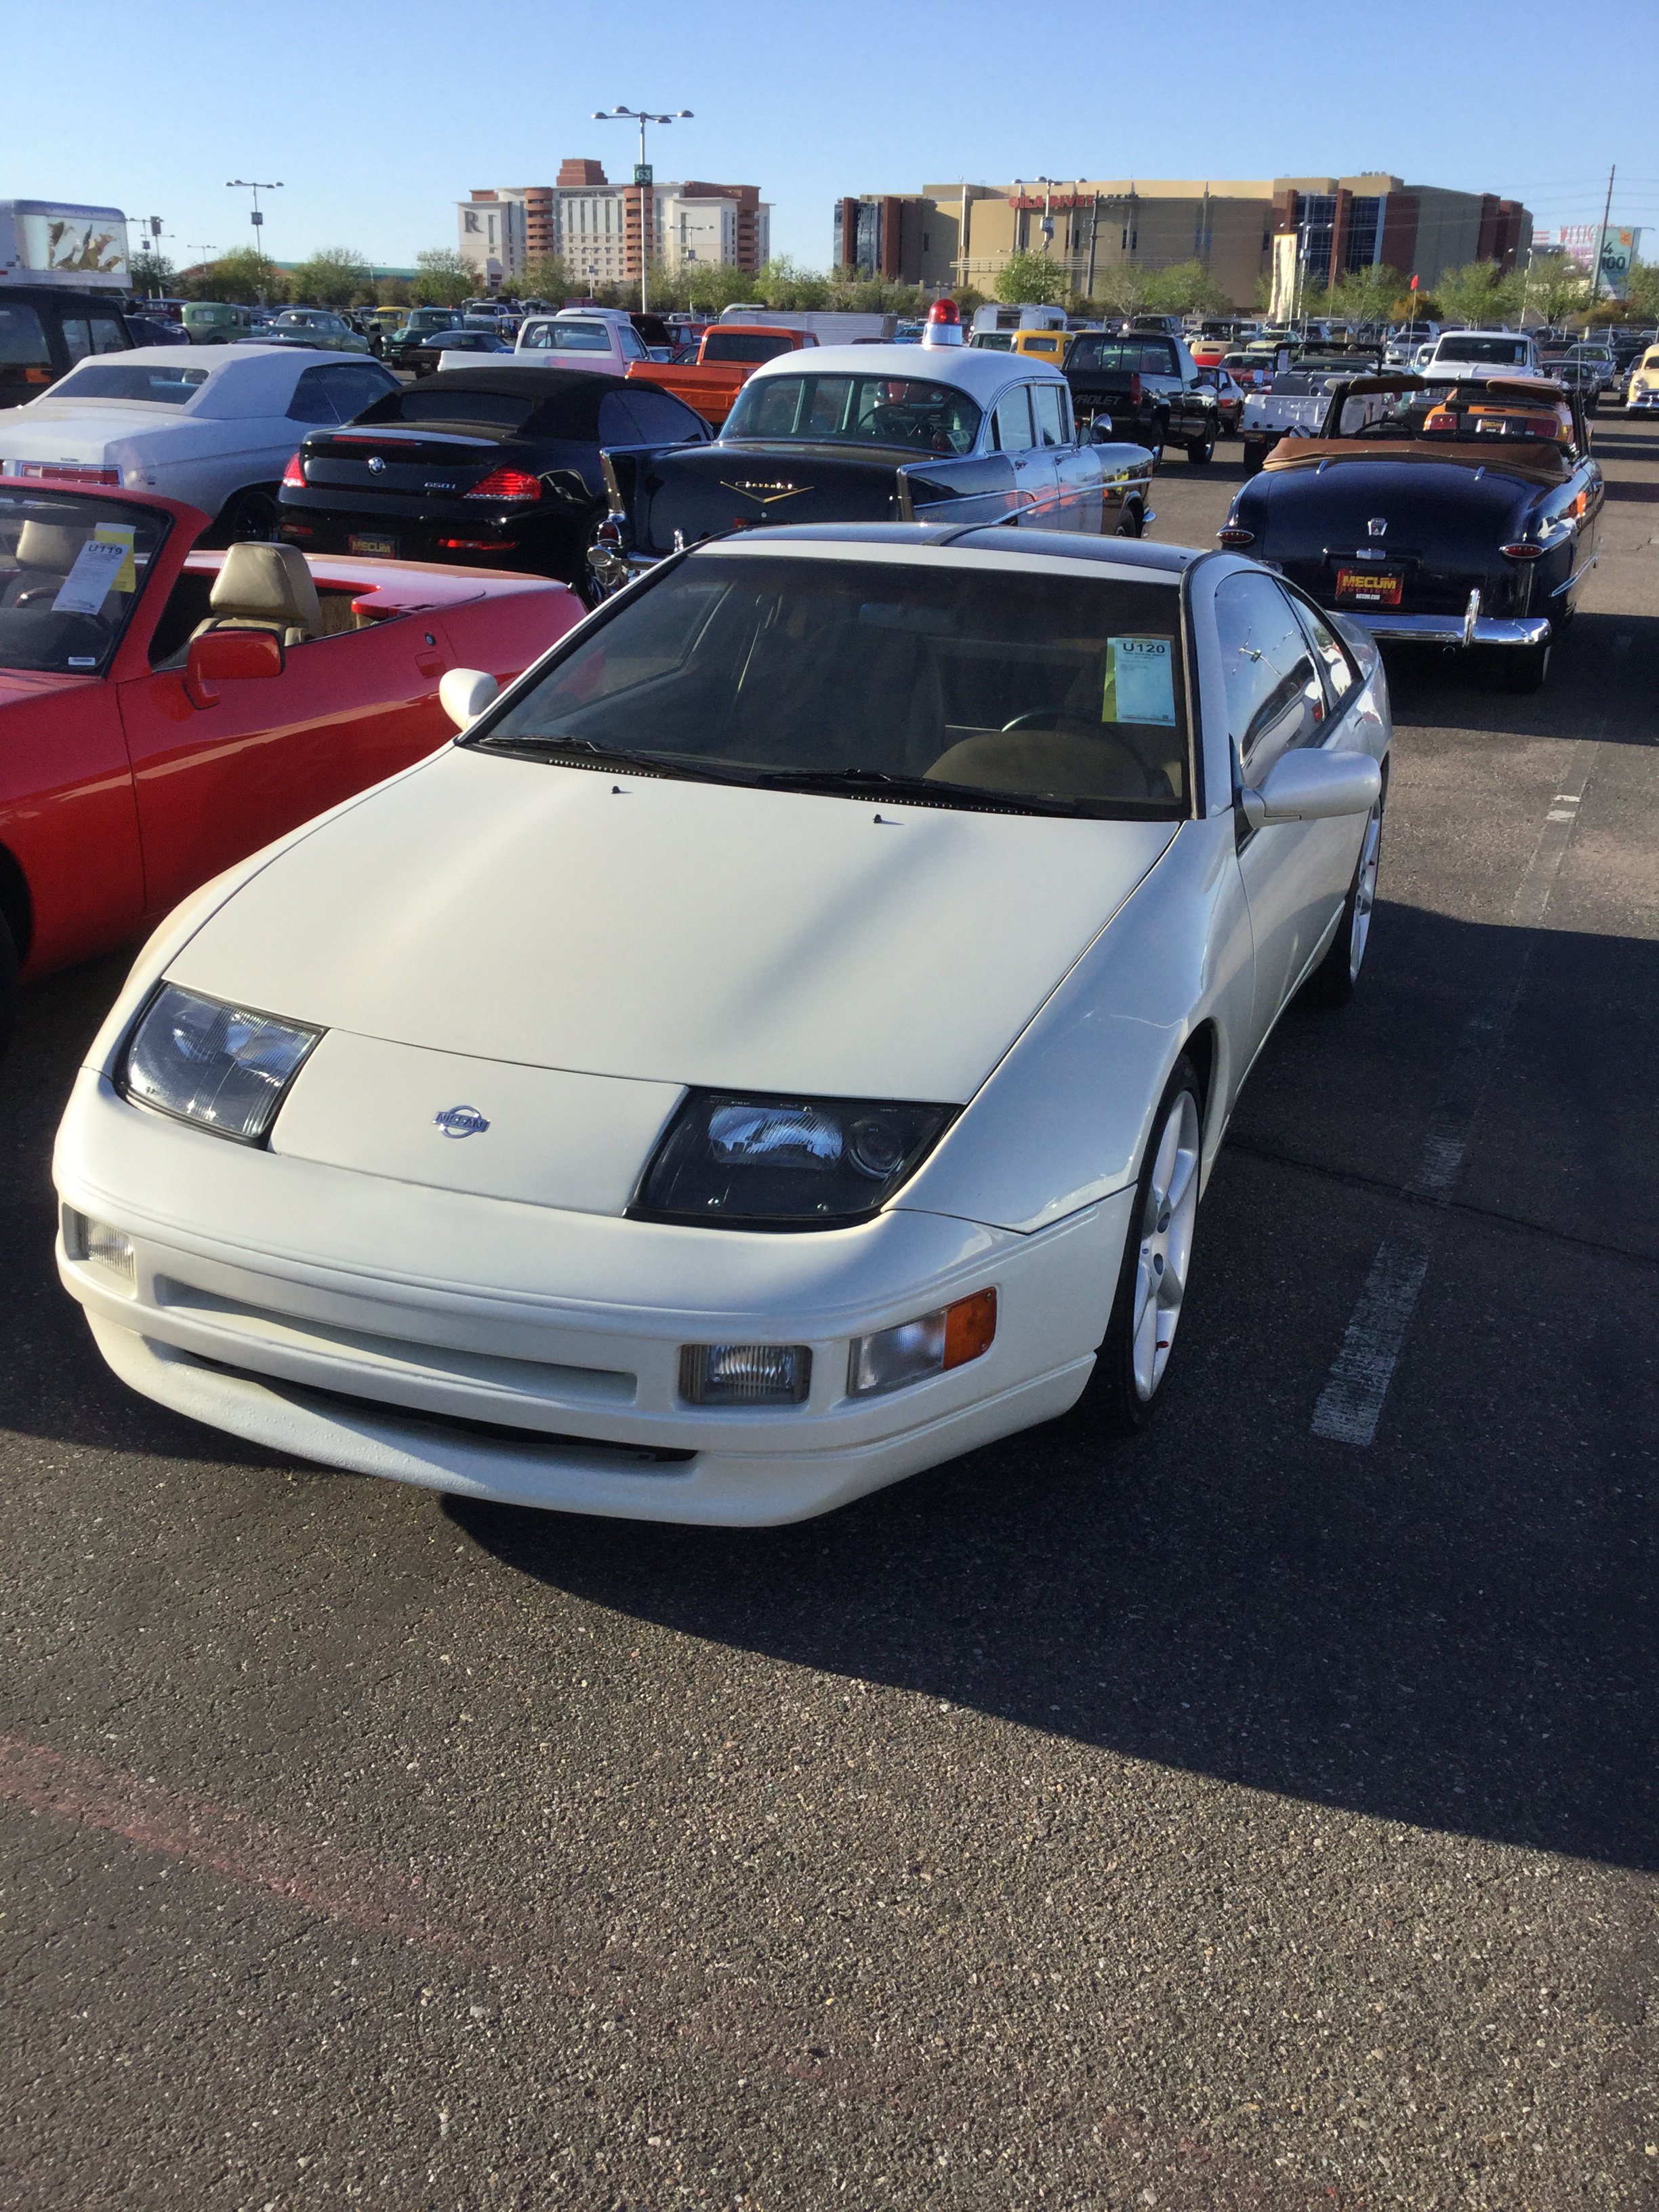 1996 Nissan 300ZX Values   Hagerty Valuation Tool®